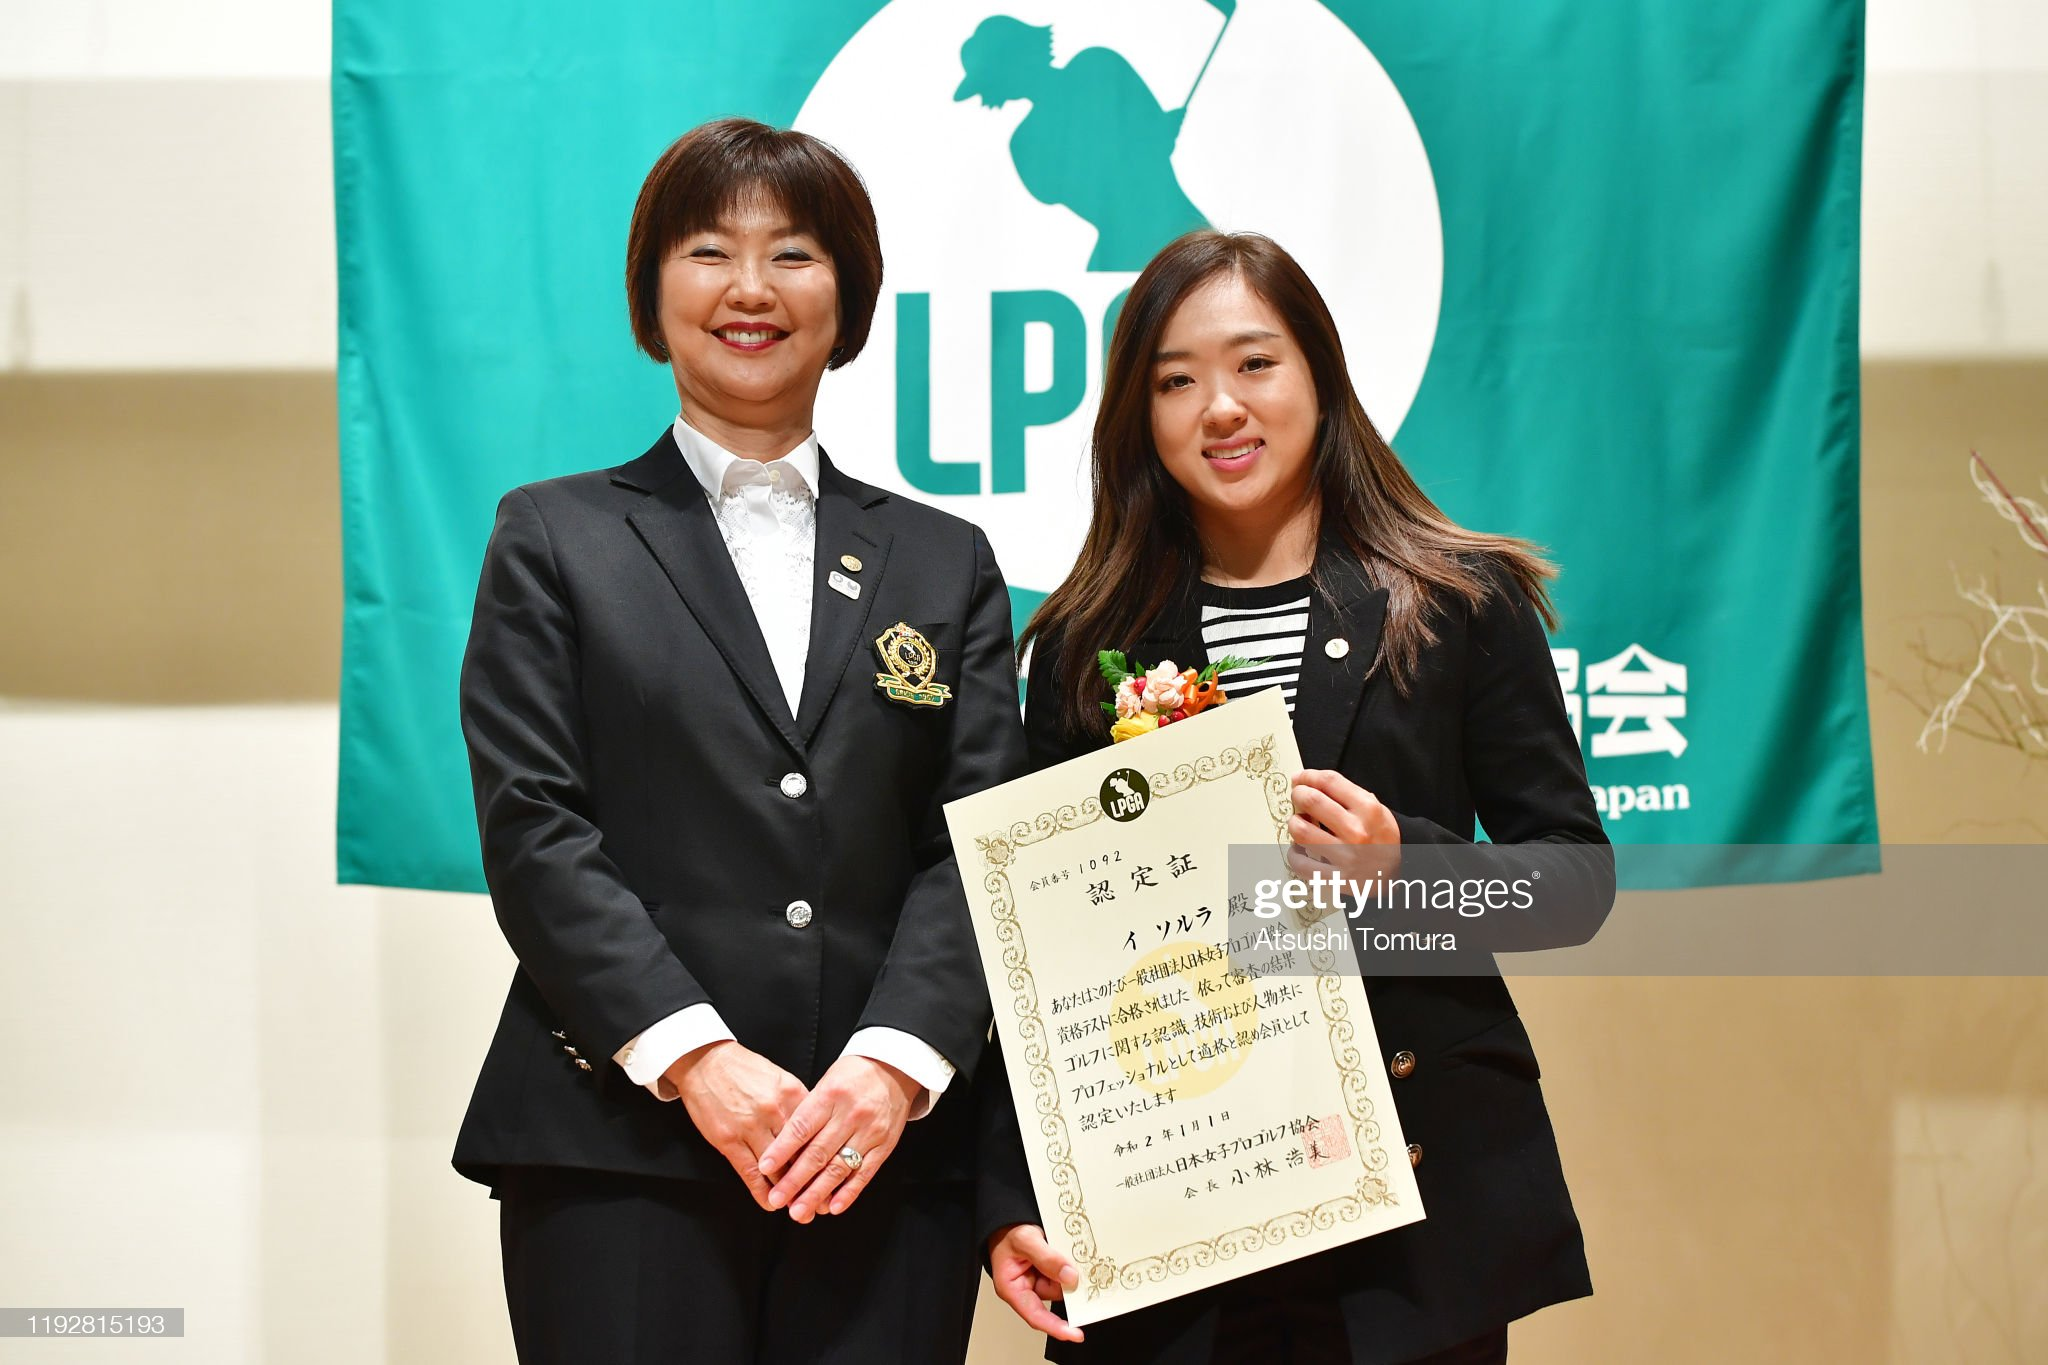 https://media.gettyimages.com/photos/solar-lee-of-south-korea-poses-with-japanese-lpga-president-hiromi-picture-id1192815193?s=2048x2048